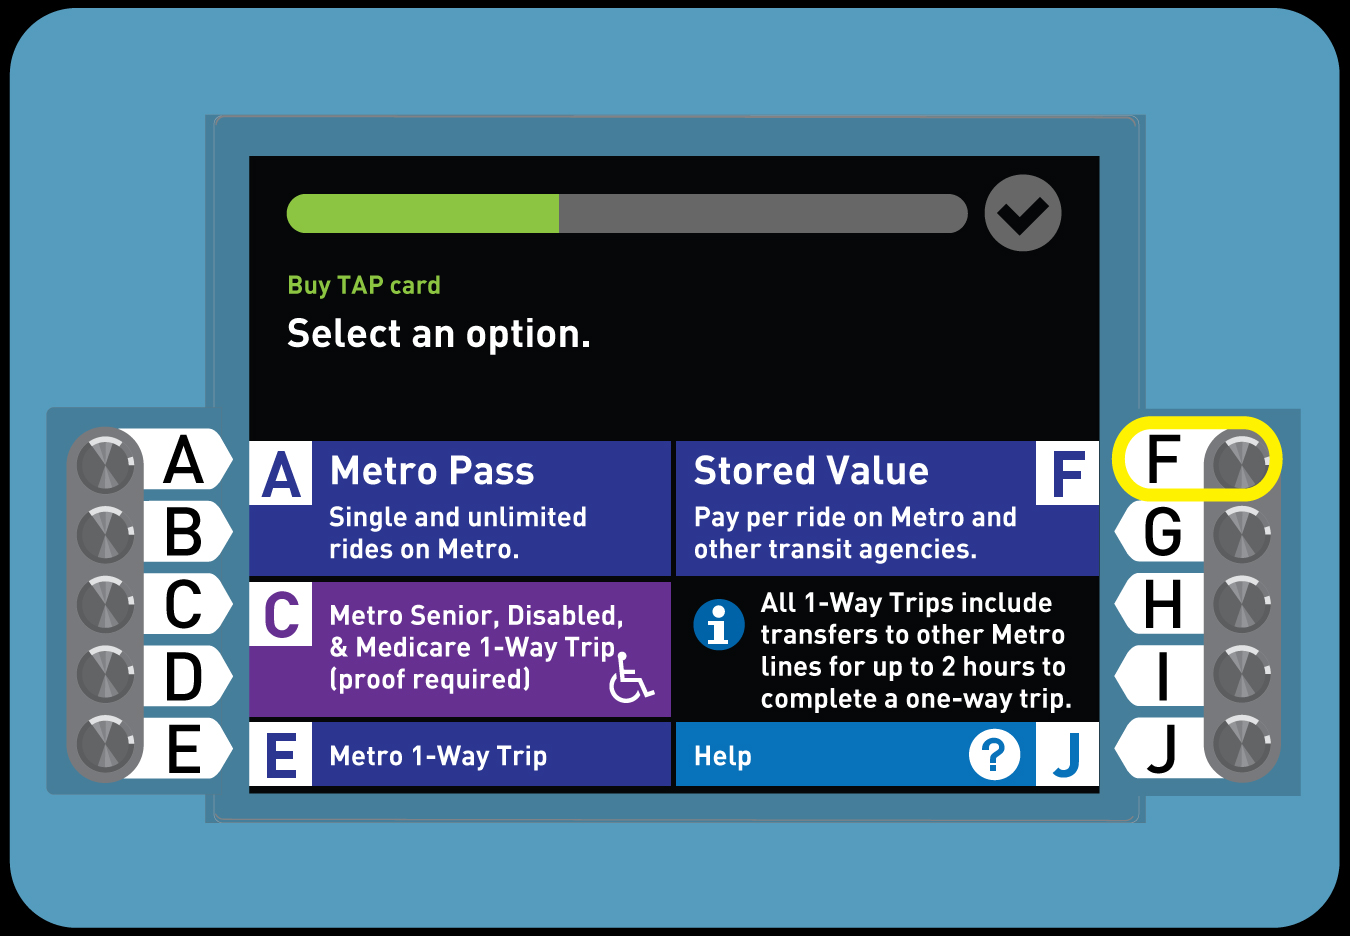 <p>3. Buy a Regular TAP card with Stored Value</p>